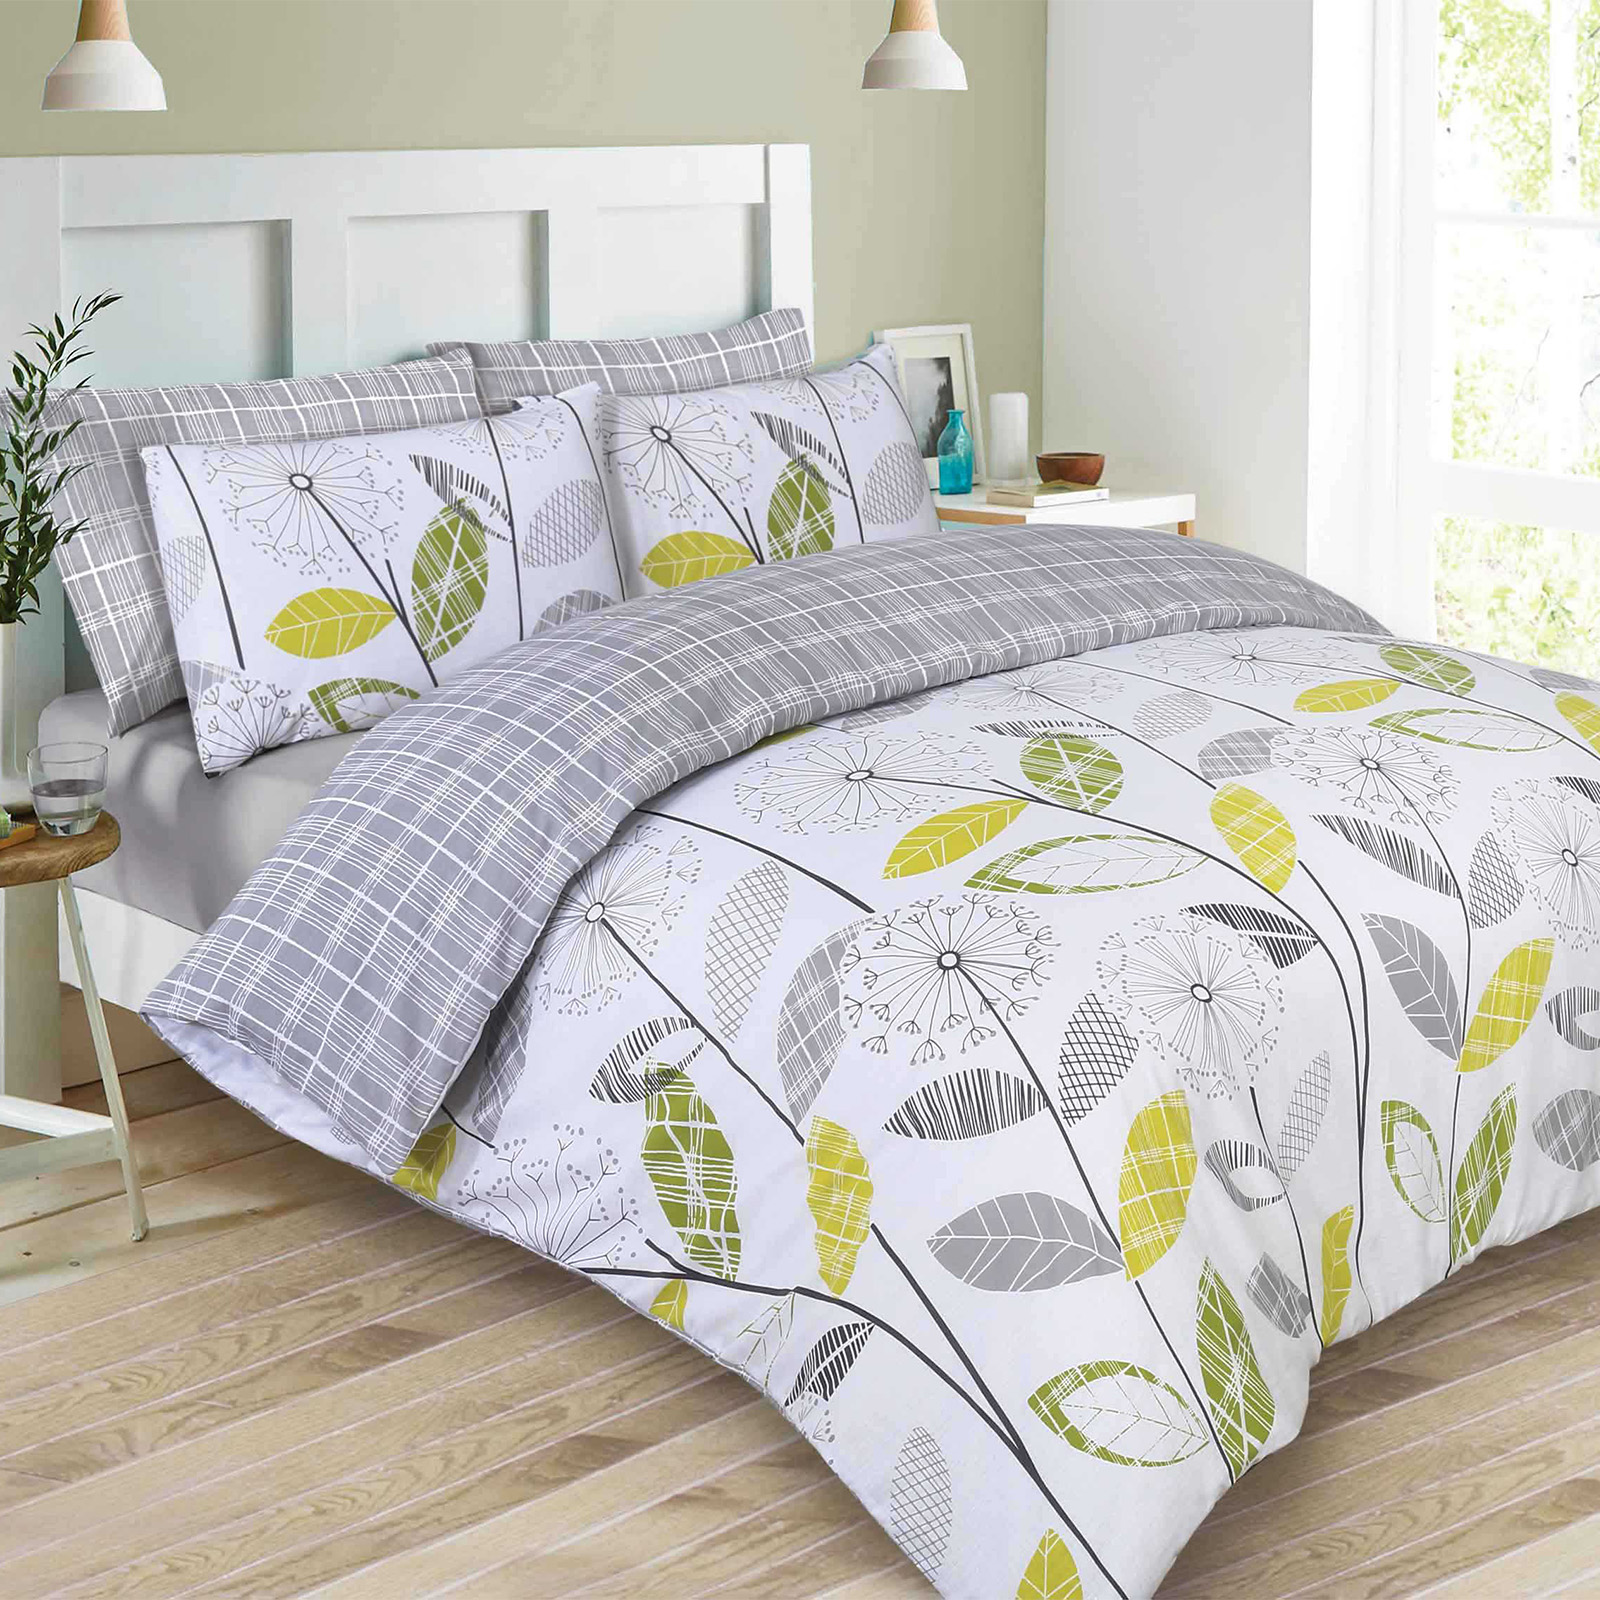 Can you use a duvet cover without a duvet - shopnow-bqimqrqk.tk